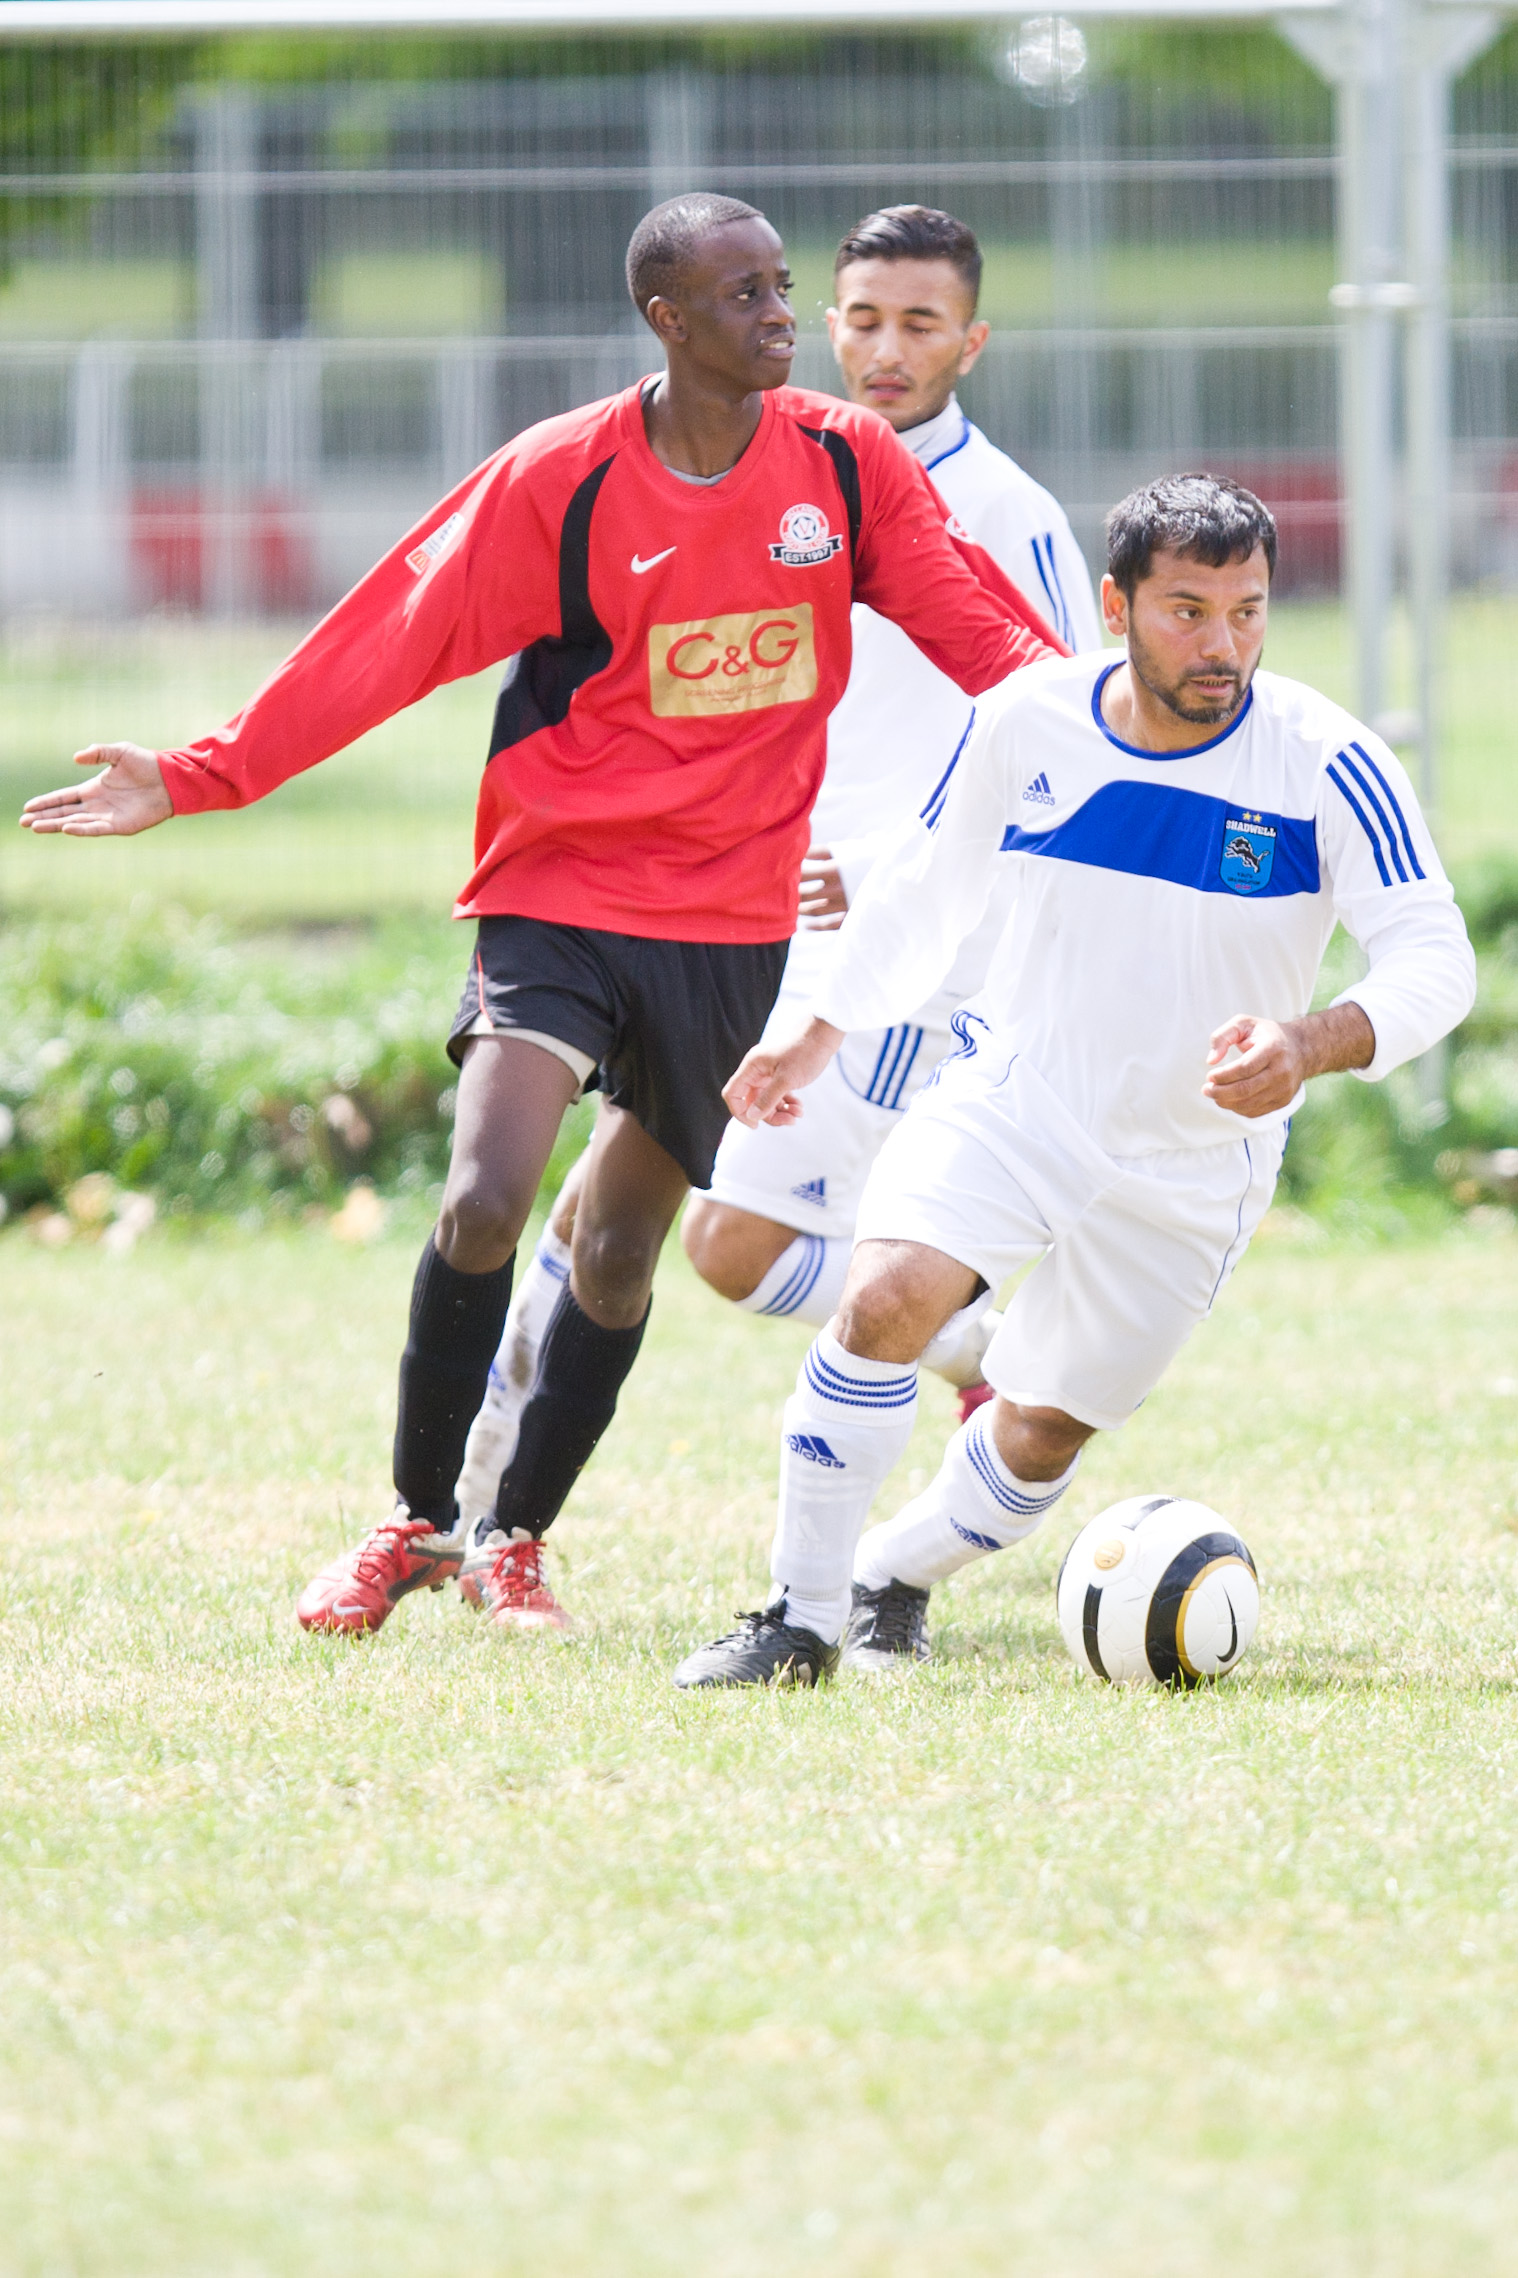 VFC Senior Gerald trying to tackle.jpg